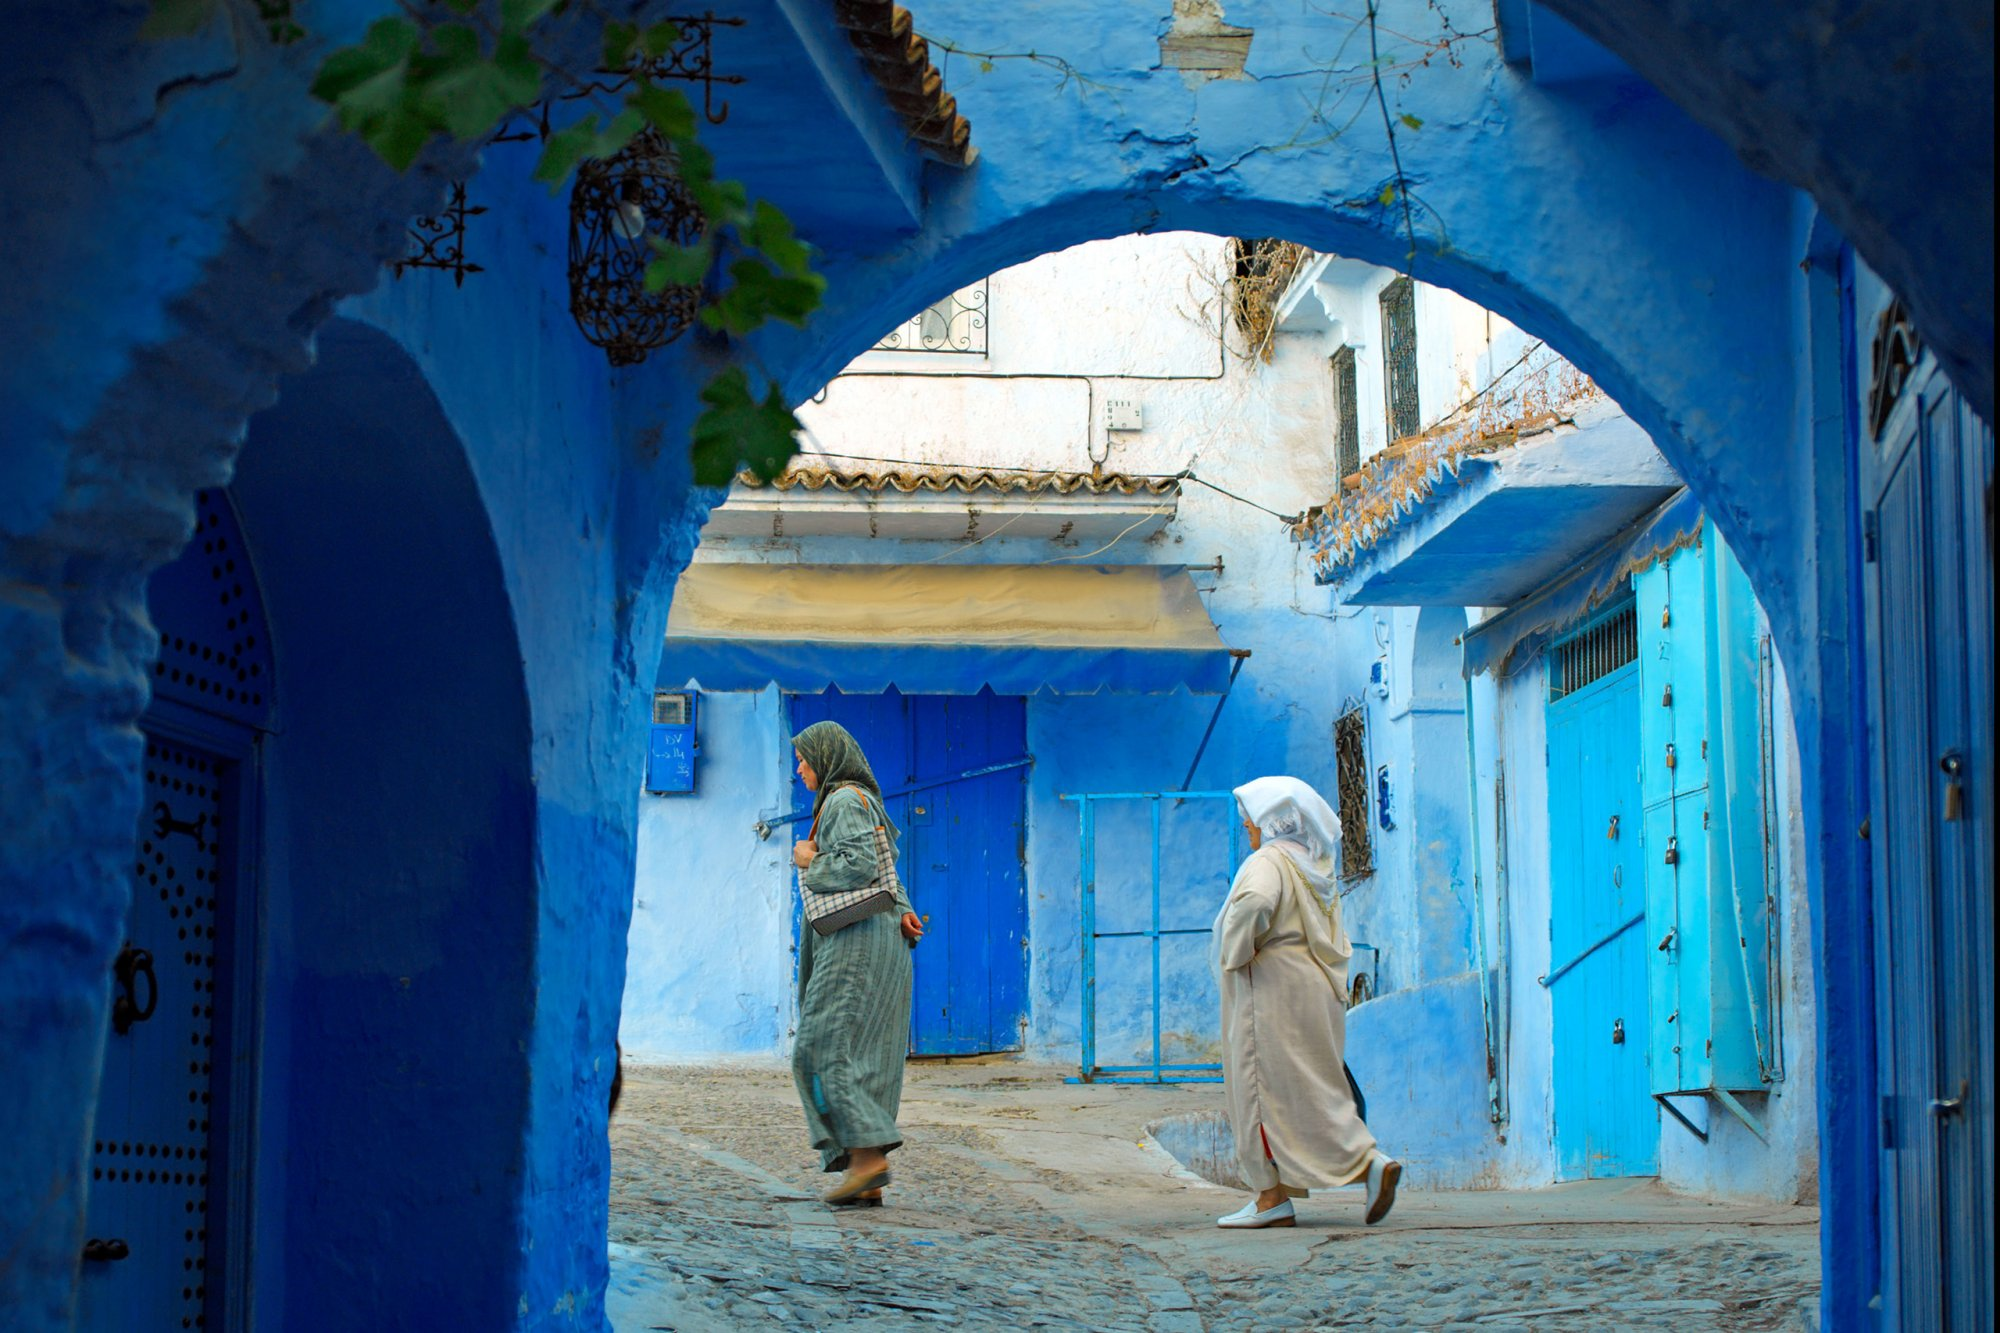 http://extranet.jetlinetravel.info/express-images/express_five_star_luxury_morocco_2.jpg